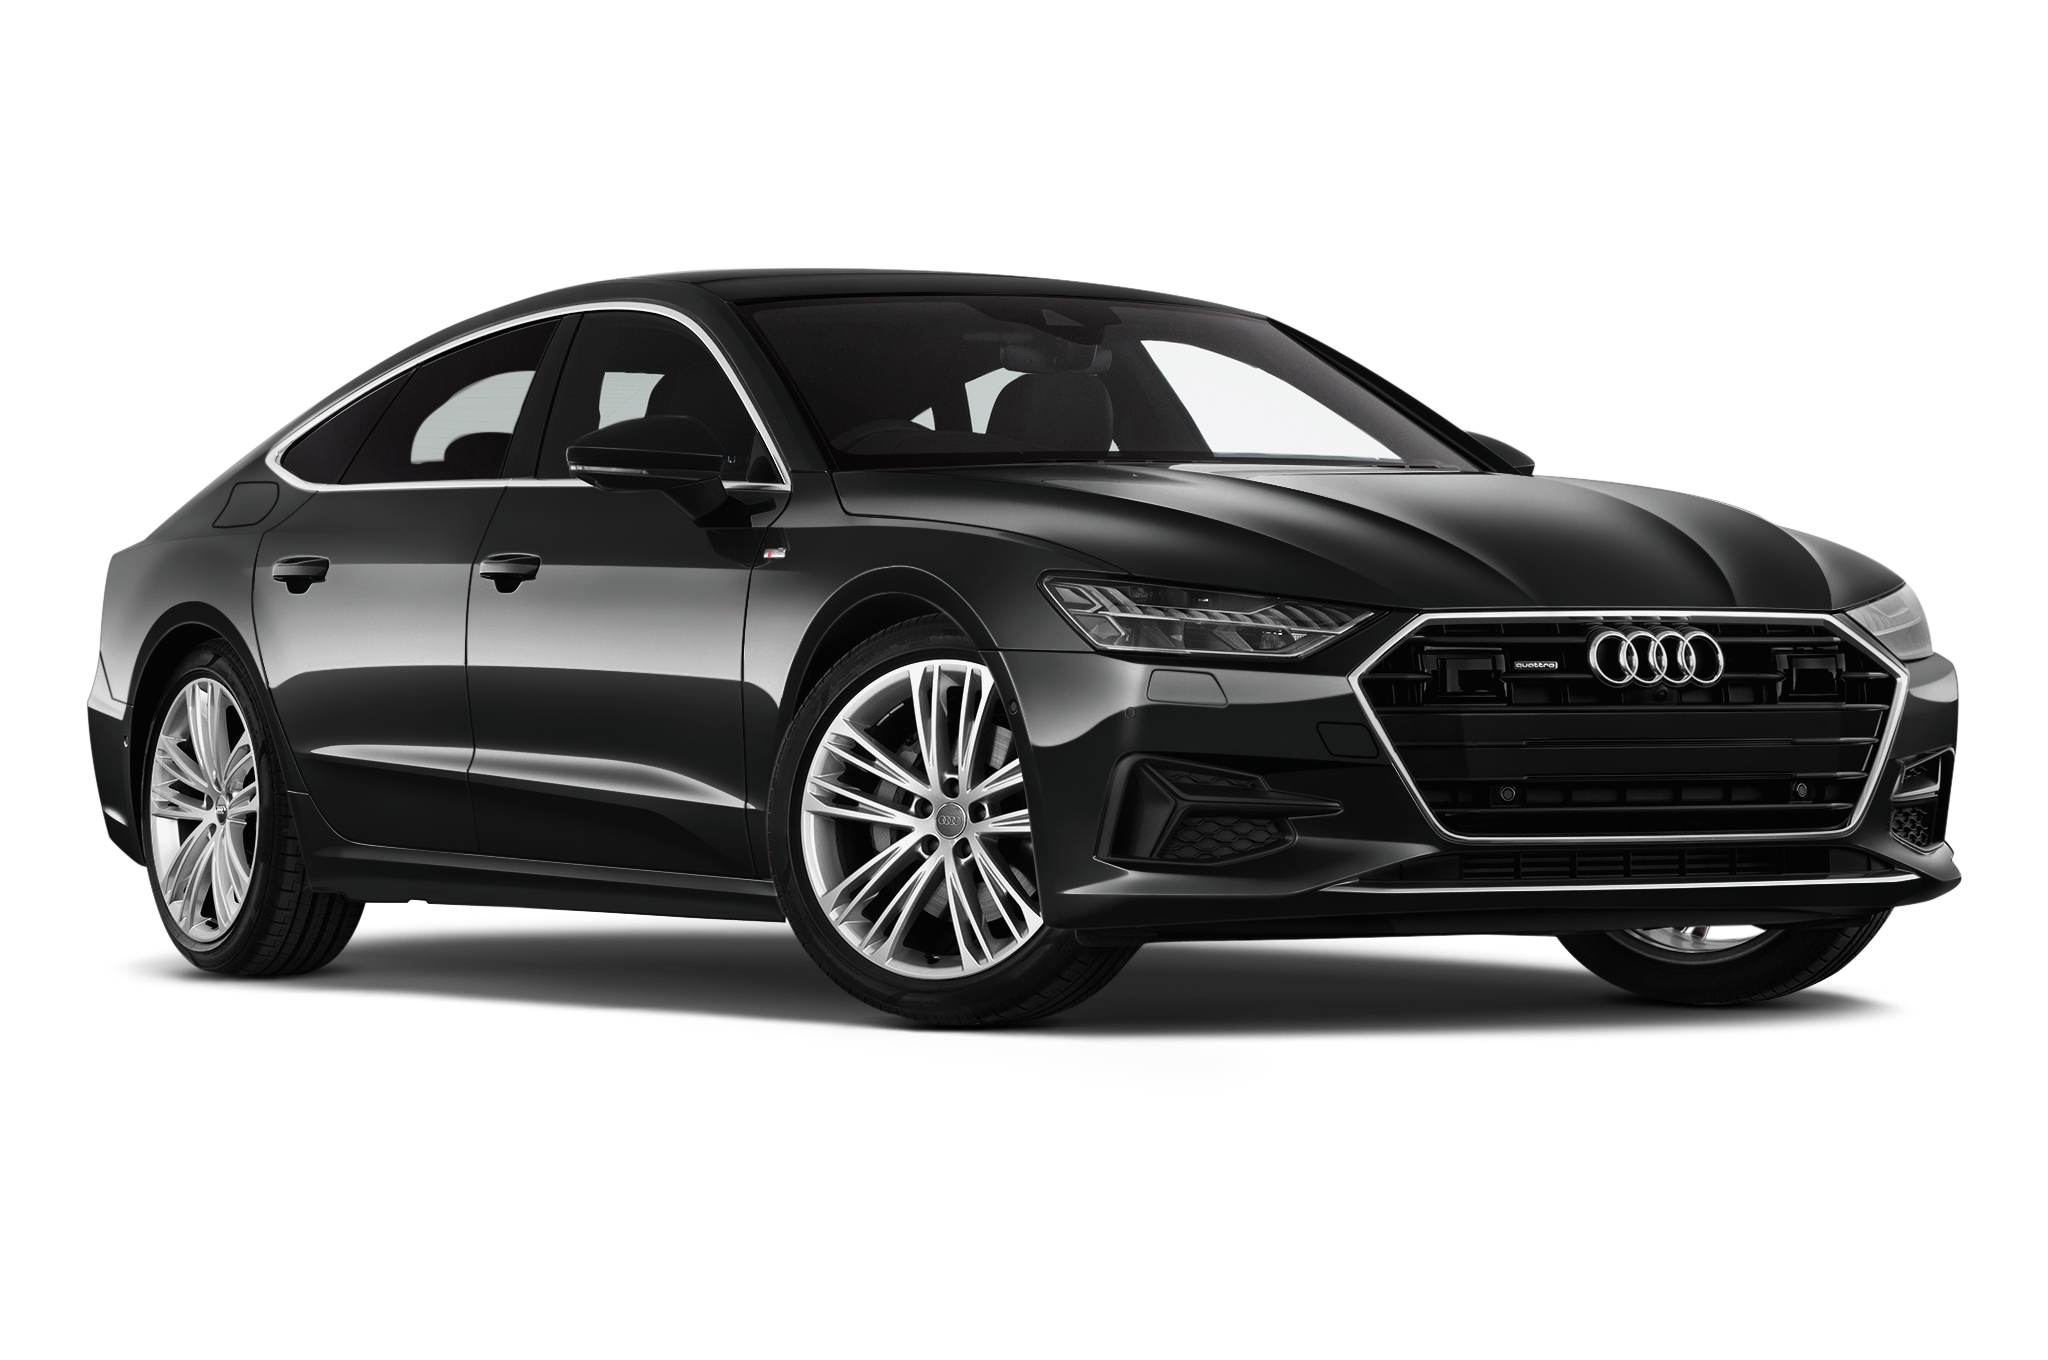 New Audi A7 Sportback Deals Offers Save Up To 13 015 Carwow